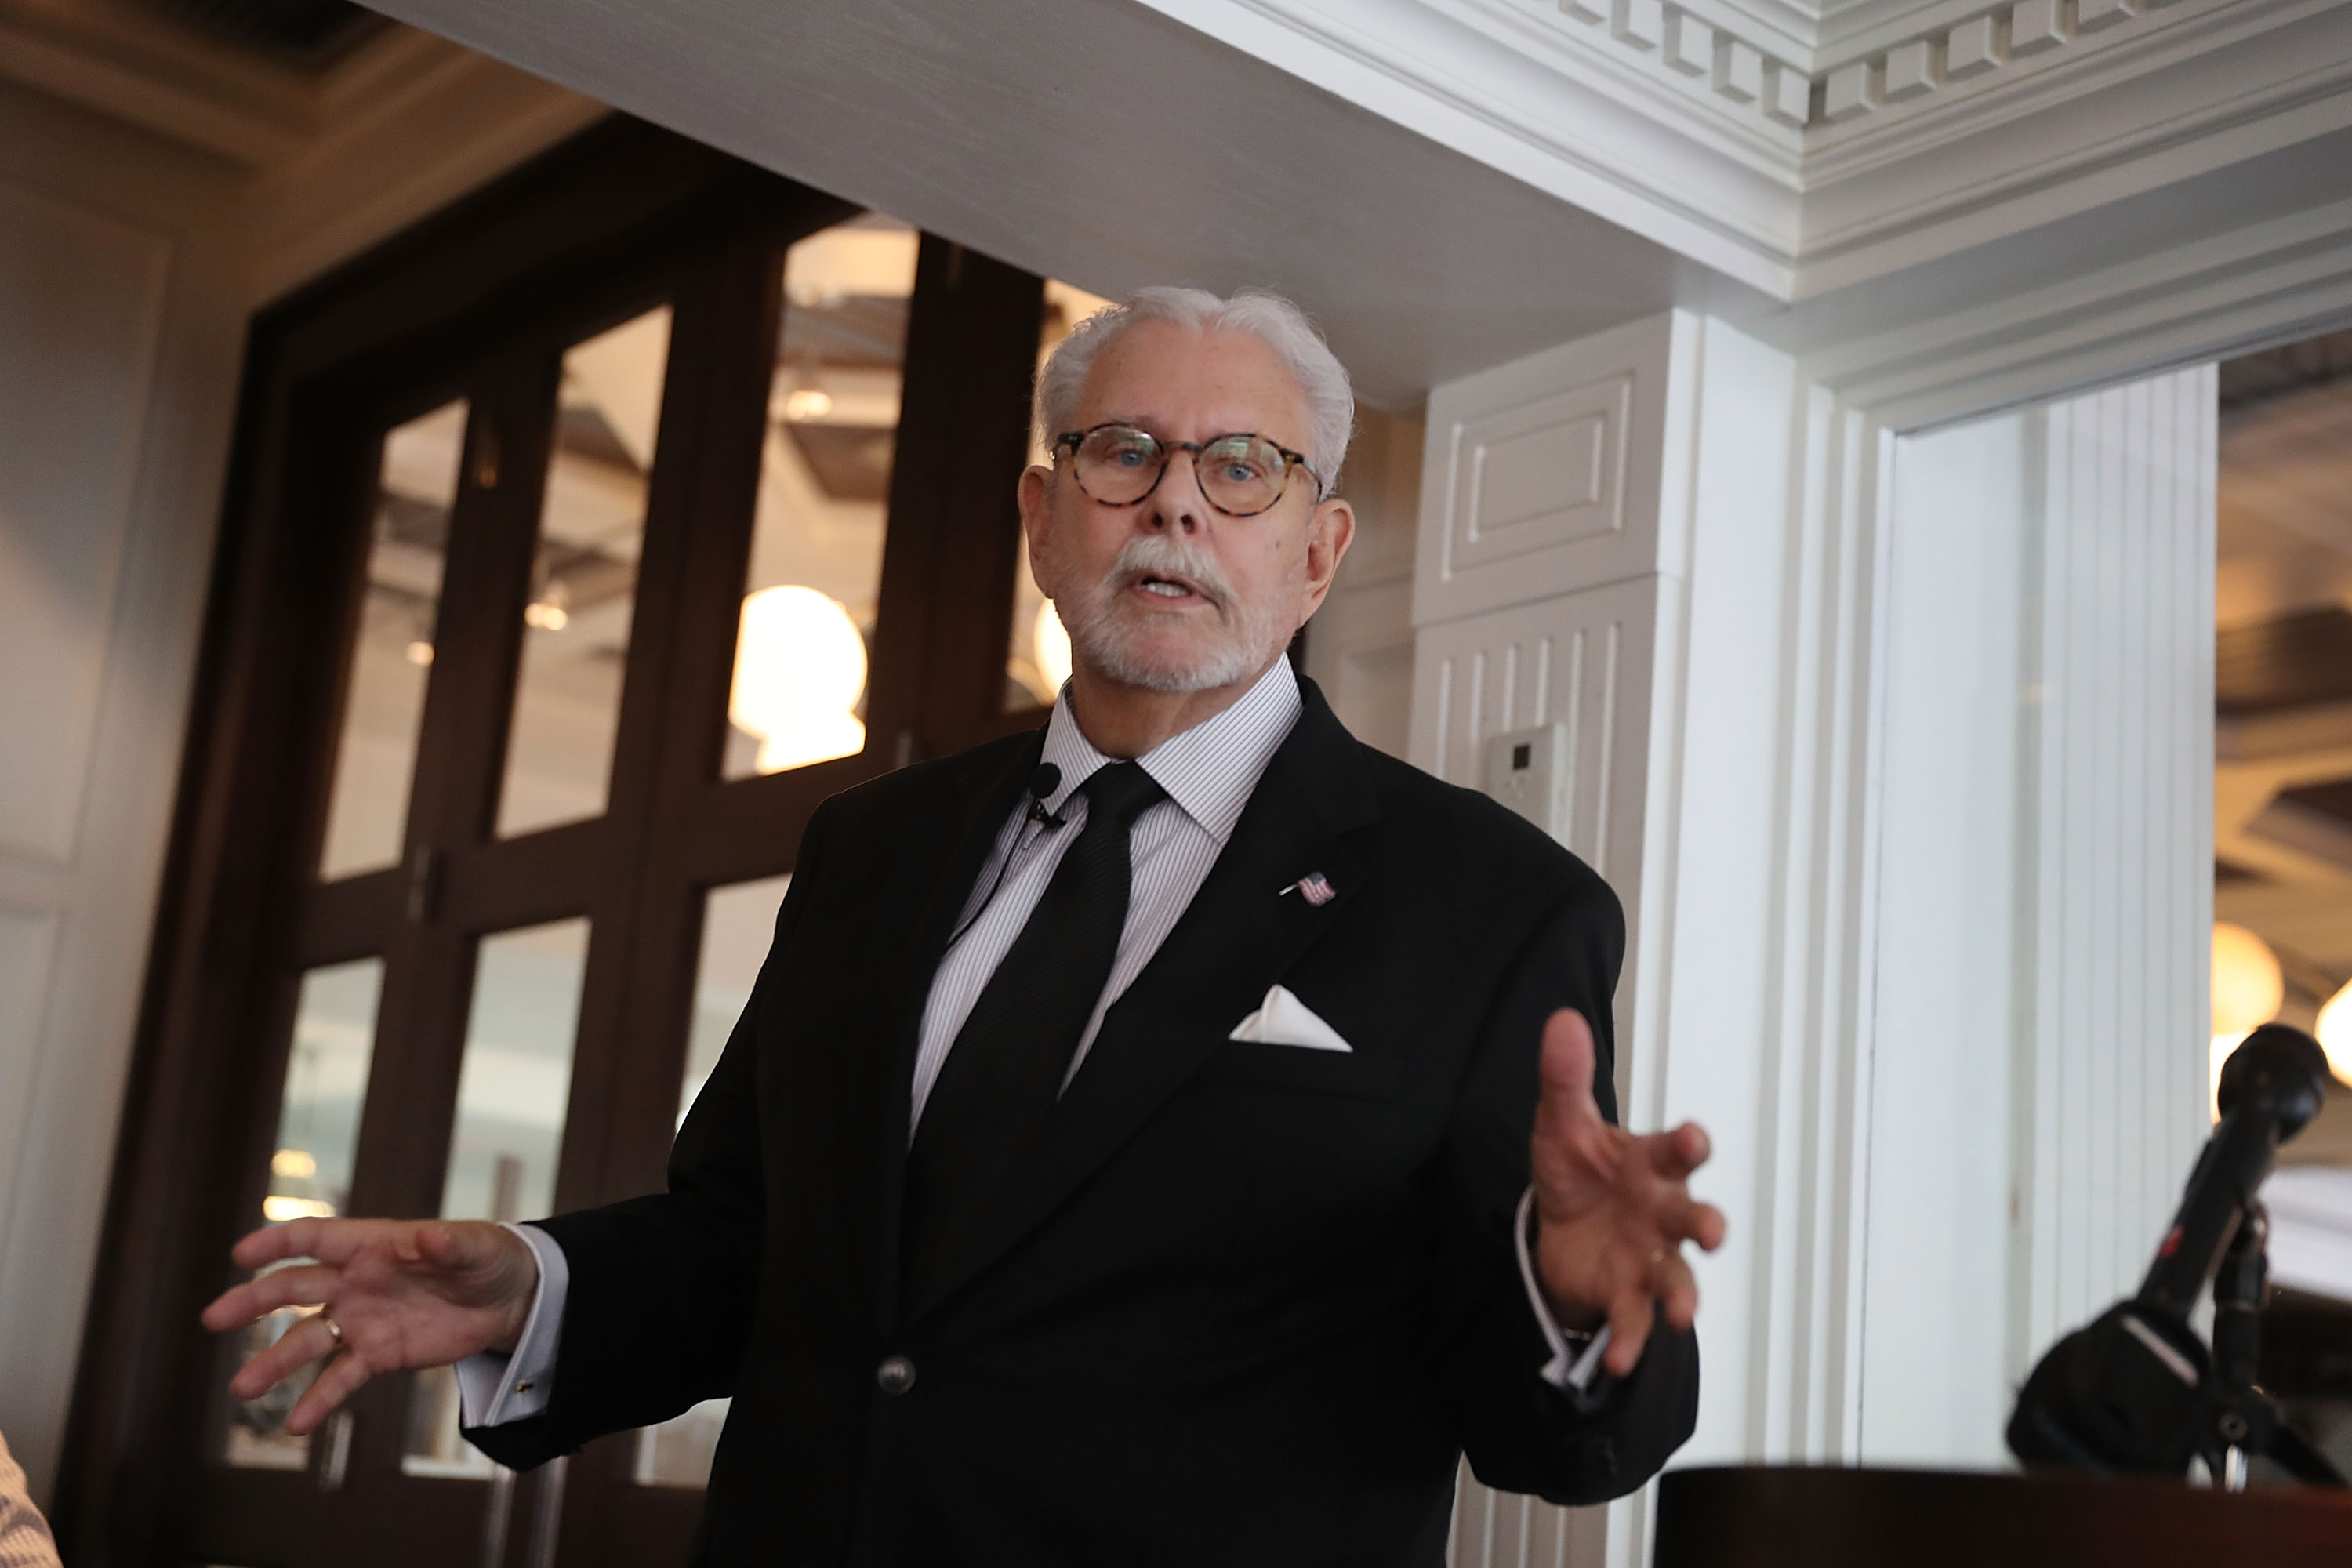 Tony Senecal, the former butler for Republican presidential candidate Donald Trump at his Mar-a-Lago estate, speaks to the Gold Coast Tiger Bay Club on June 8 in Boca Raton, Florida.